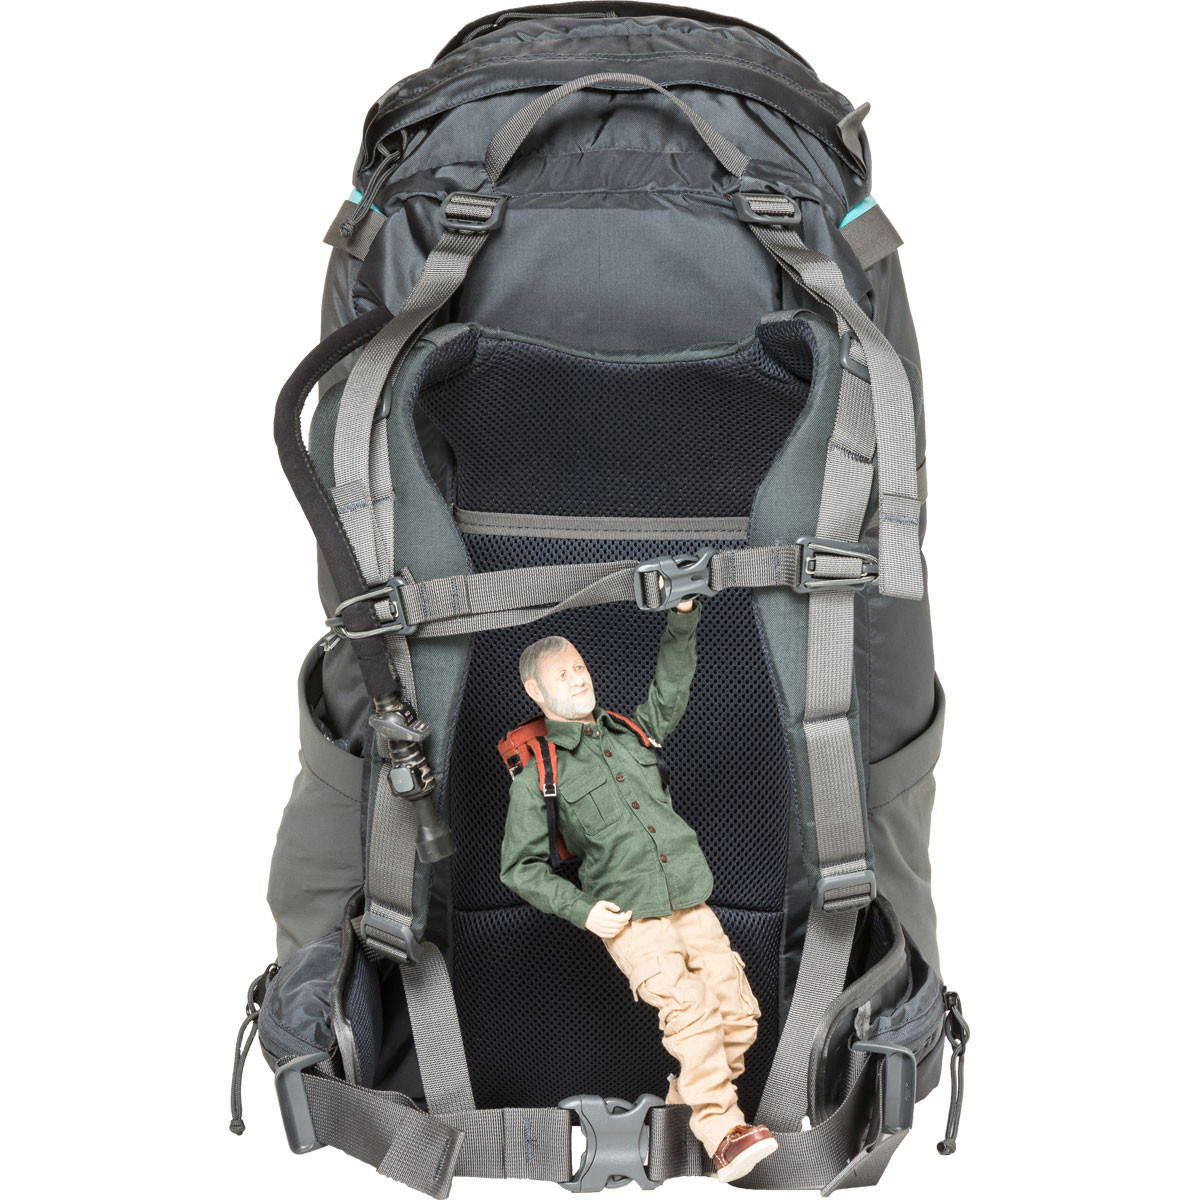 ex_scree_40-nightfall-mid-size-hiking-backpack-body-panel.jpg